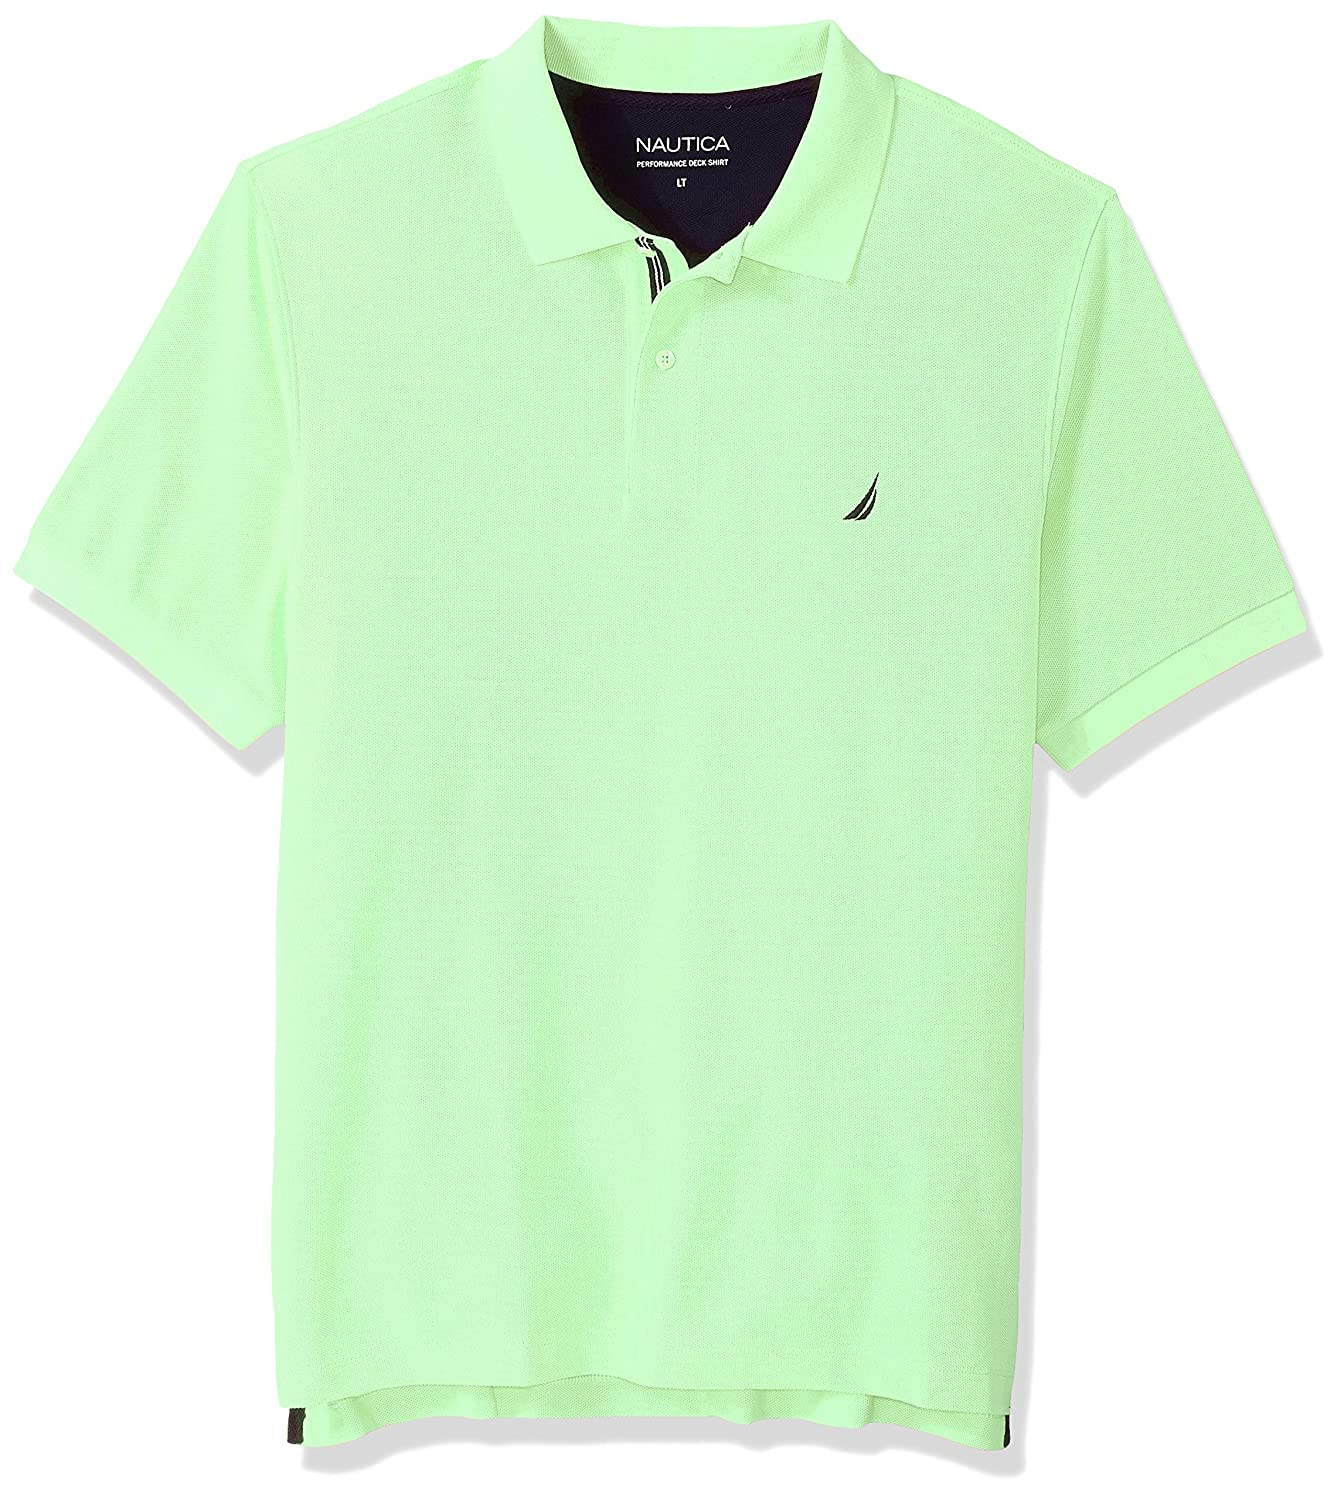 e551c20e Nautica Men's Big and Tall Classic Short Sleeve Solid Polo Shirt:  Amazon.ca: Clothing & Accessories